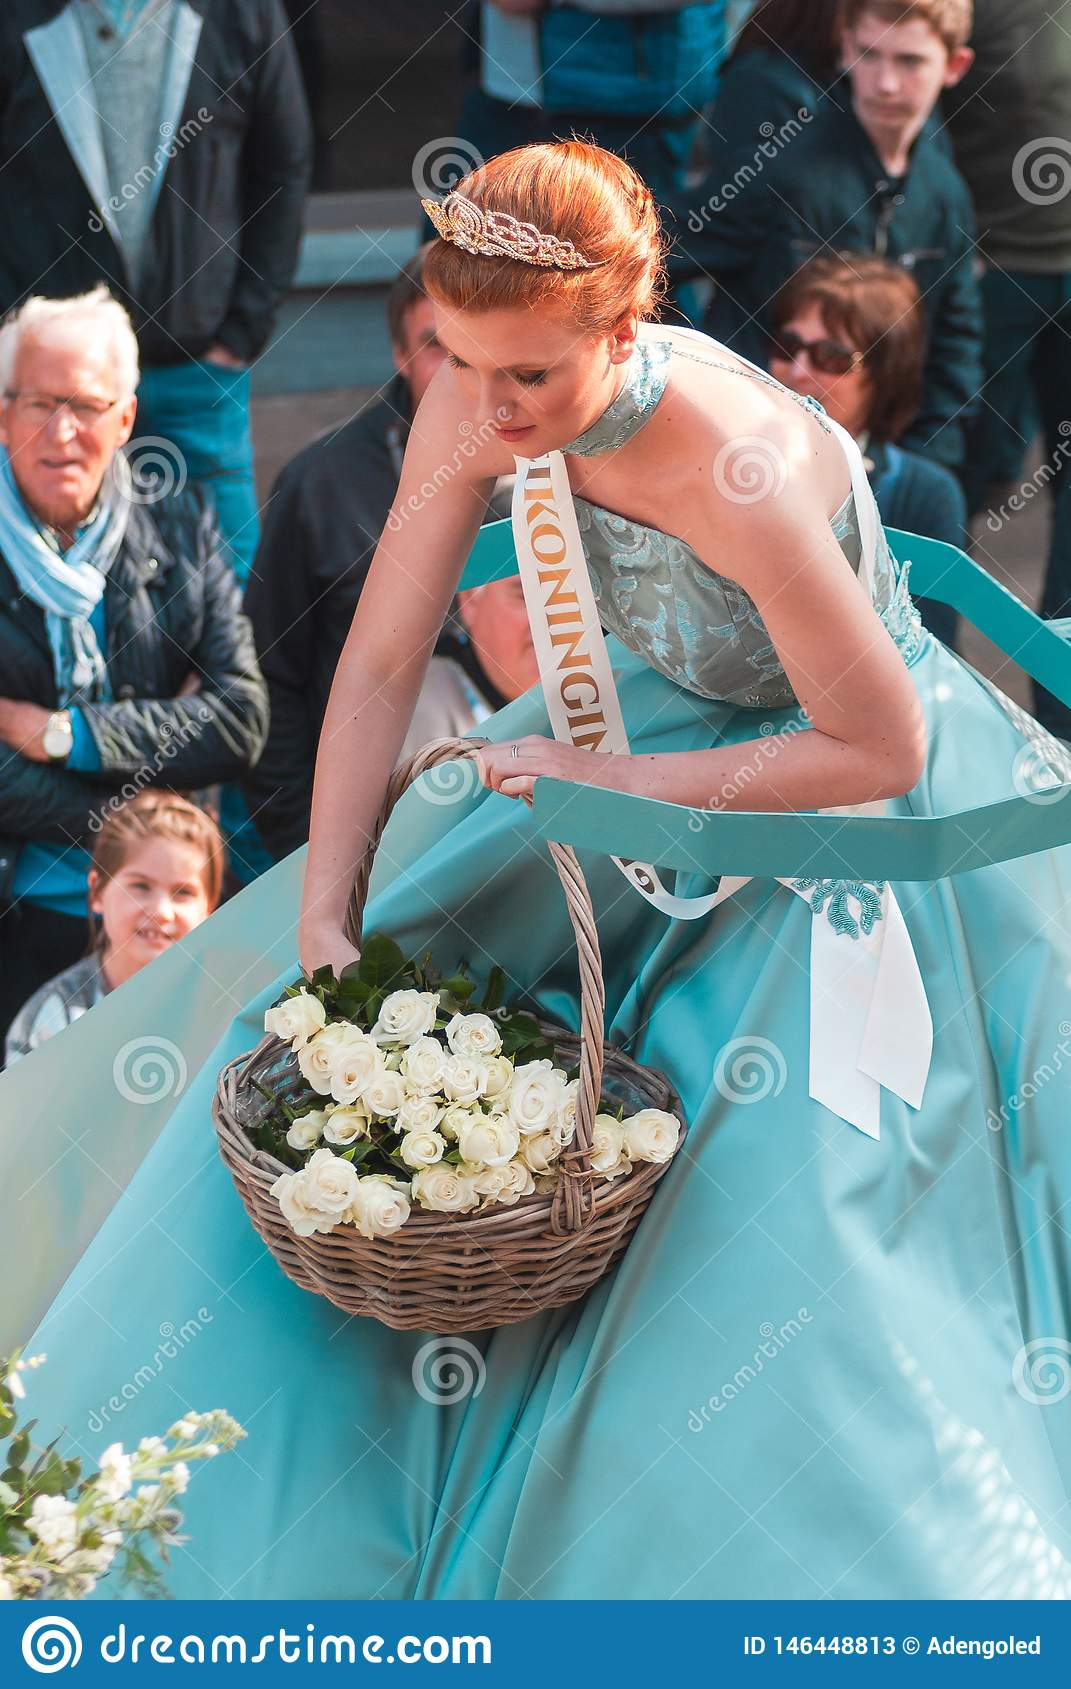 Genk, Belgium - May 1st 2019: Participants of annual O-parade. The queen of May is throwing white roses to the crowd